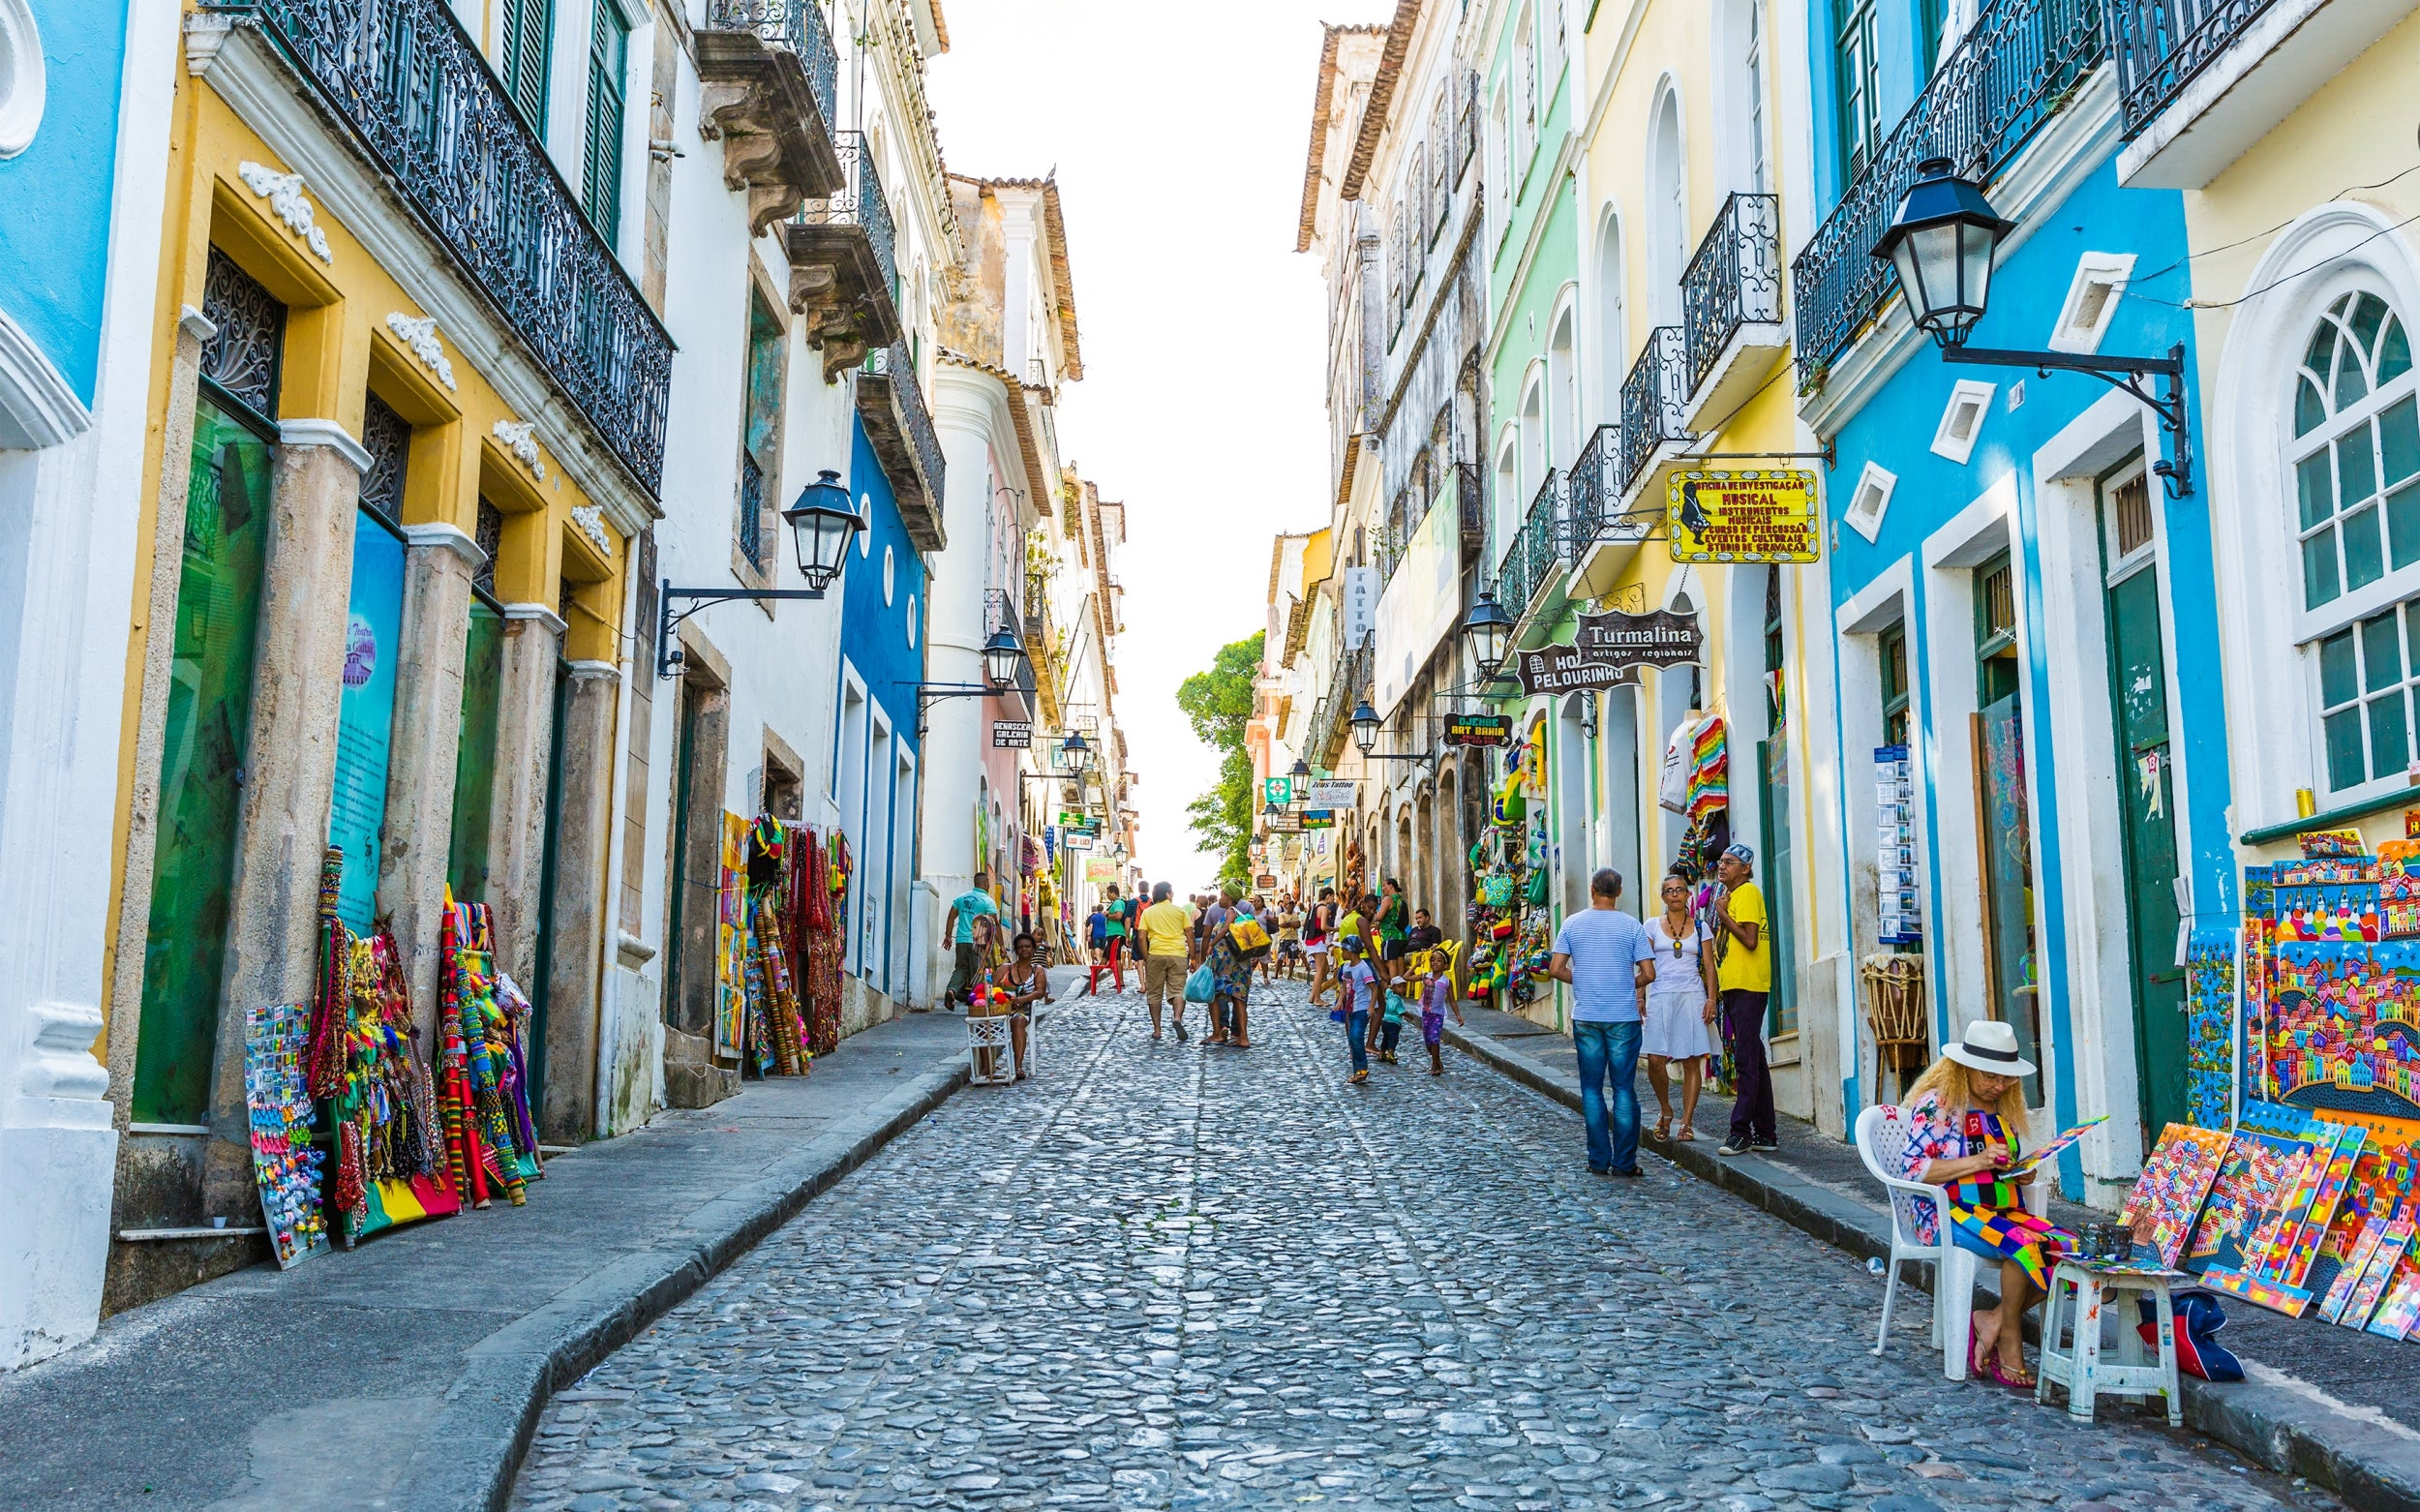 Salvador, Brazil: The country's original capital gets a makeover